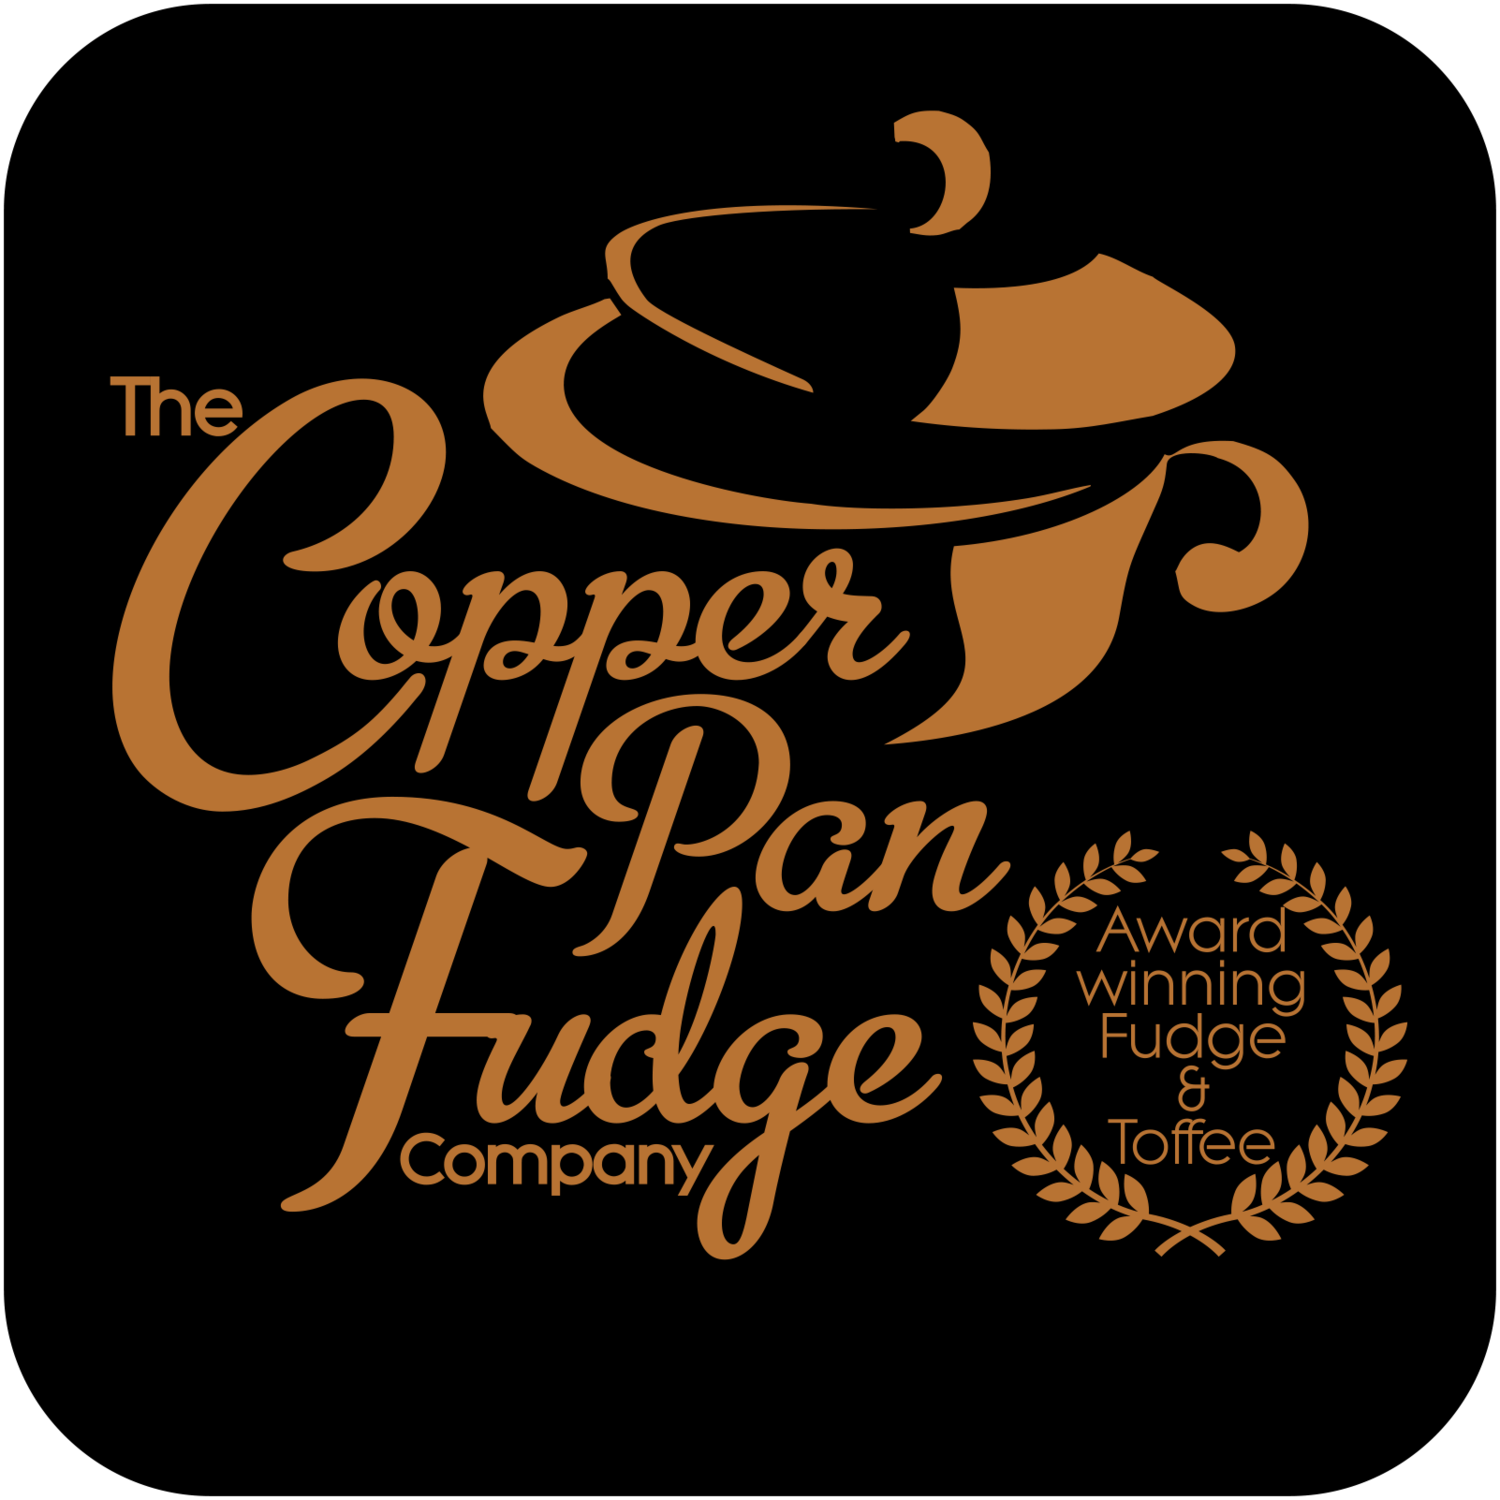 The Copper Pan Fudge Company